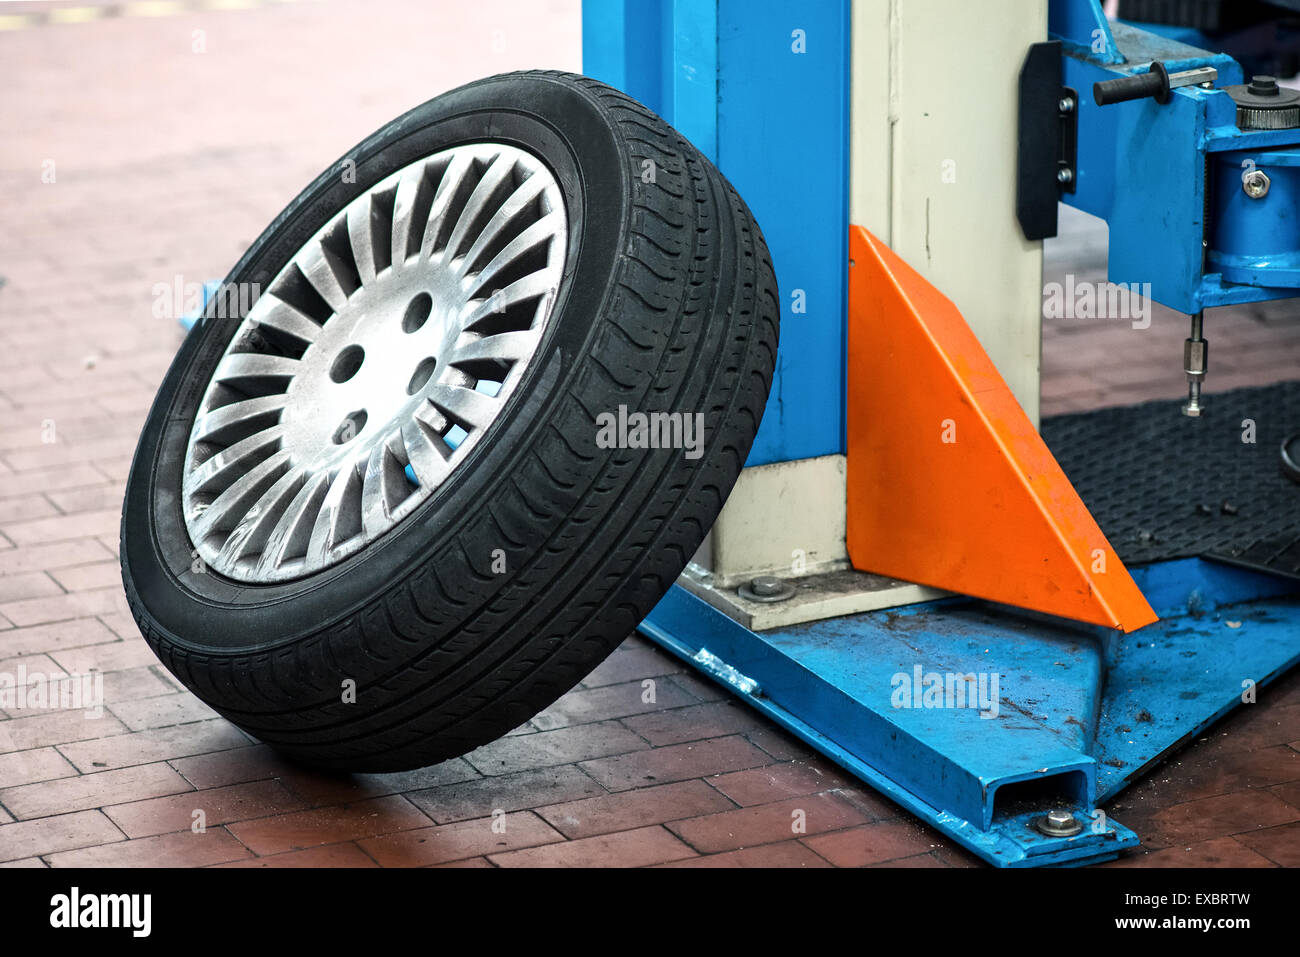 Car wheel leaning up against the support of a hoist or elevator in a garage or repair workshop - Stock Image